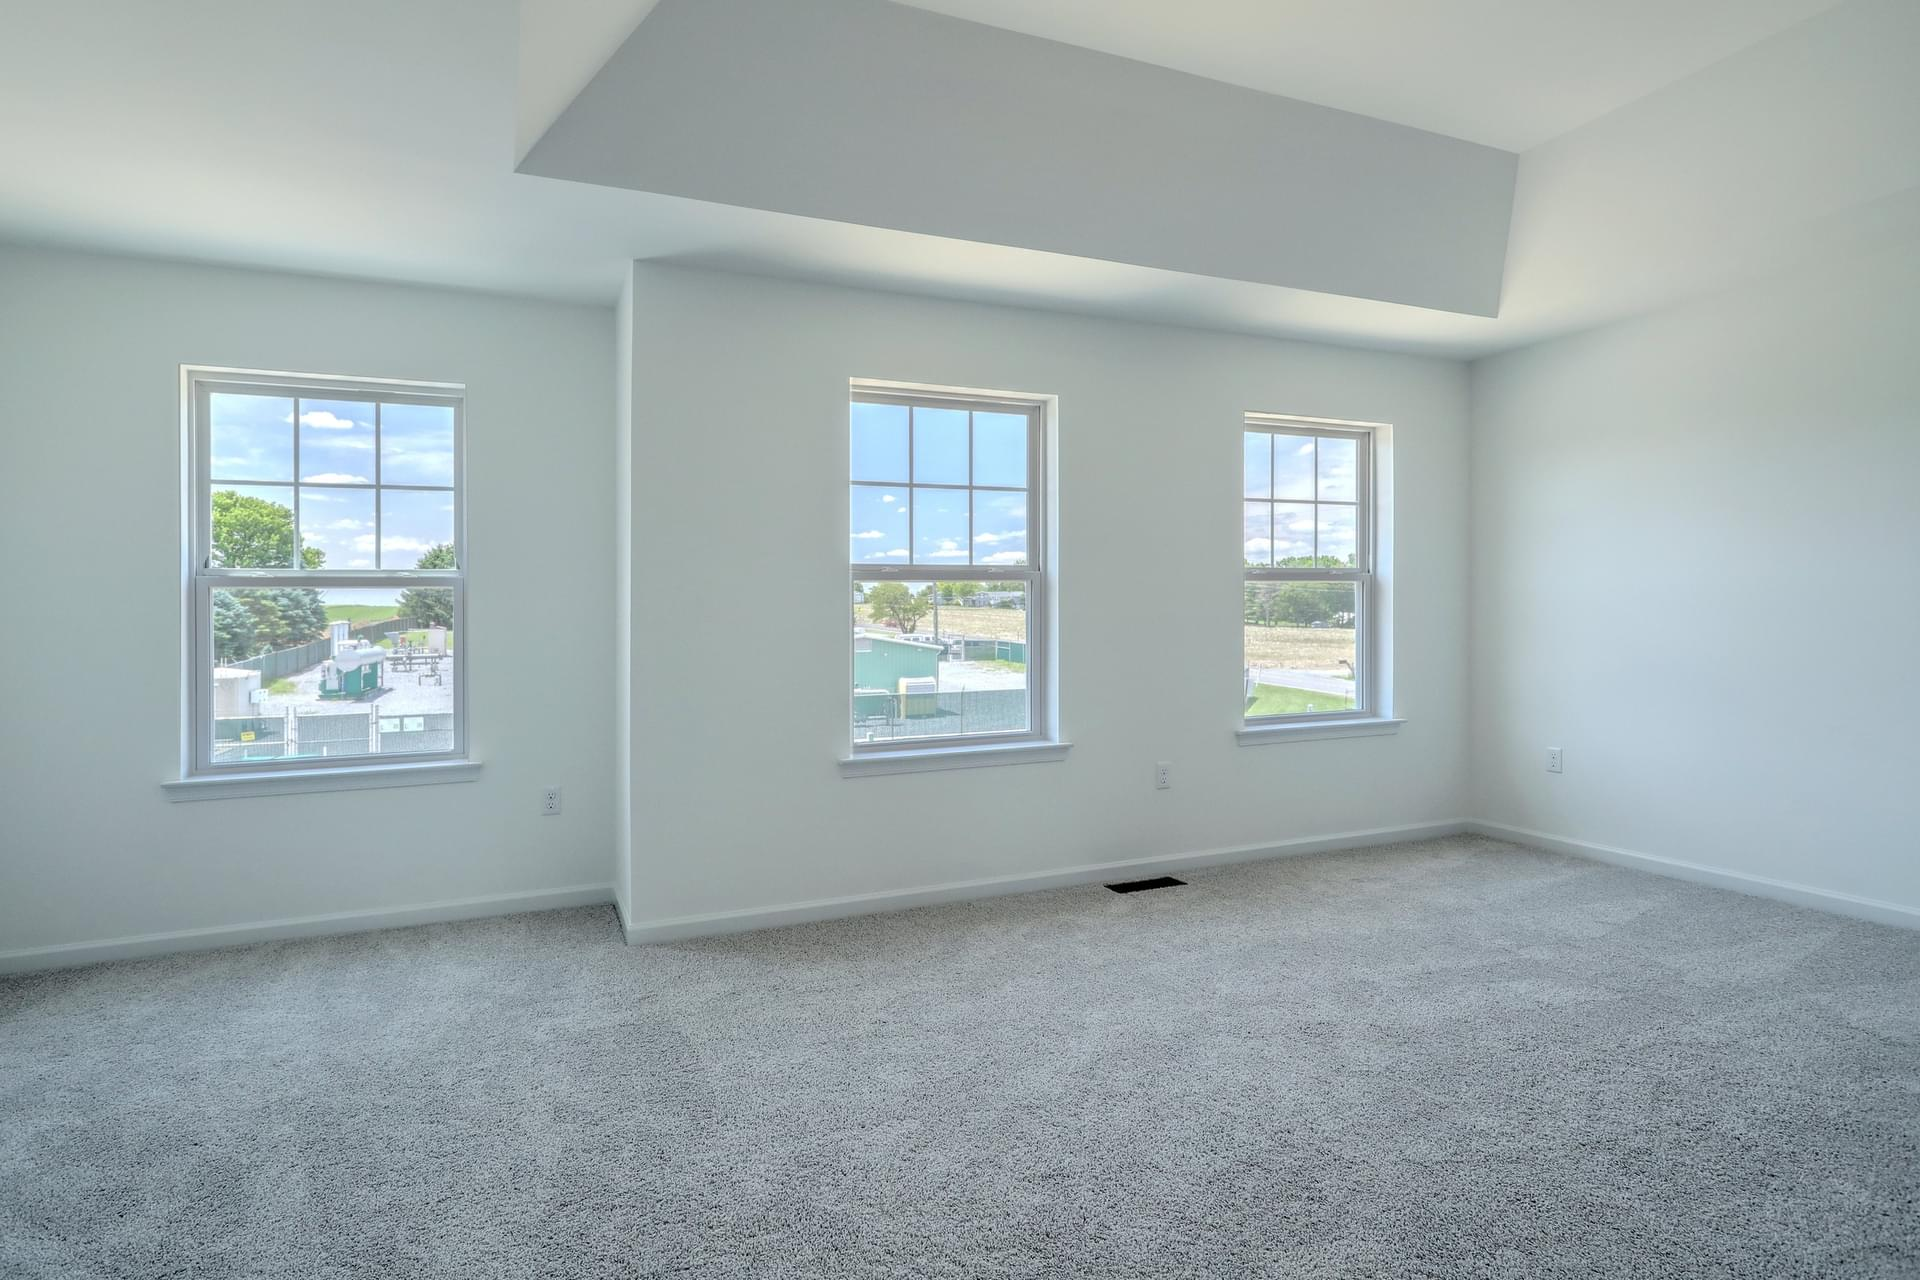 4br New Home in Bellefonte, PA